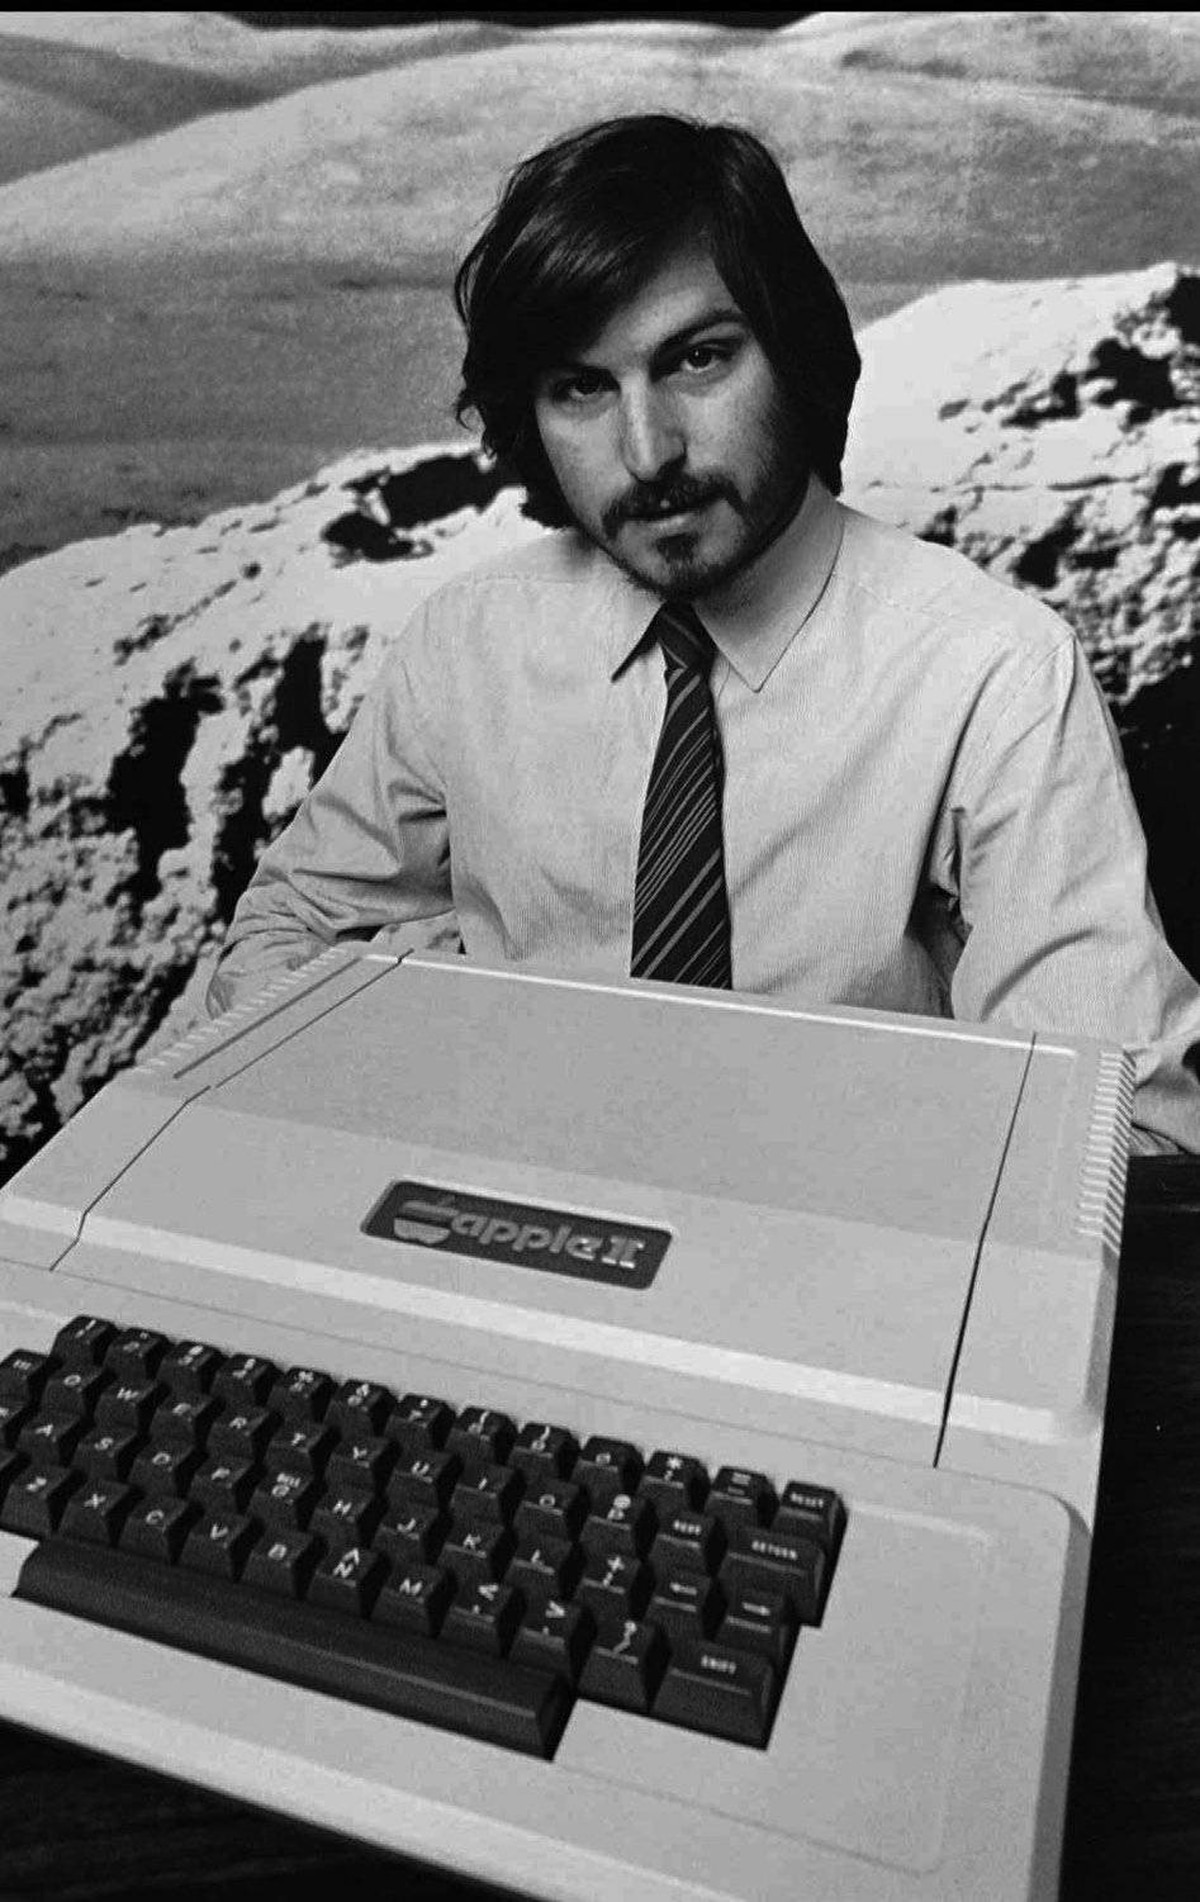 The company soon introduced the Apple I for a ticket price of $666.66. They quickly earned $774,000 in sales. A year after launching their company, they launched the Apple II, seen here in 1977. The next few years would be turbulent for the young entreprenuer. Sales climbed 700 per cent to $139-million by 1980, when Apple Computer became a publicly traded company. But following models suffered from quality issues and consumers balked at the company's 1984 offering, the Macintosh. By 1985, Jobs resigned from the company. He'd go on to start another tech company called NeXT, Inc., and invest heavily into what later became Pixar Animation Studios. By 1997, Apple bought NeXT, Inc. for $429-million and Jobs rejoined his former company as CEO.